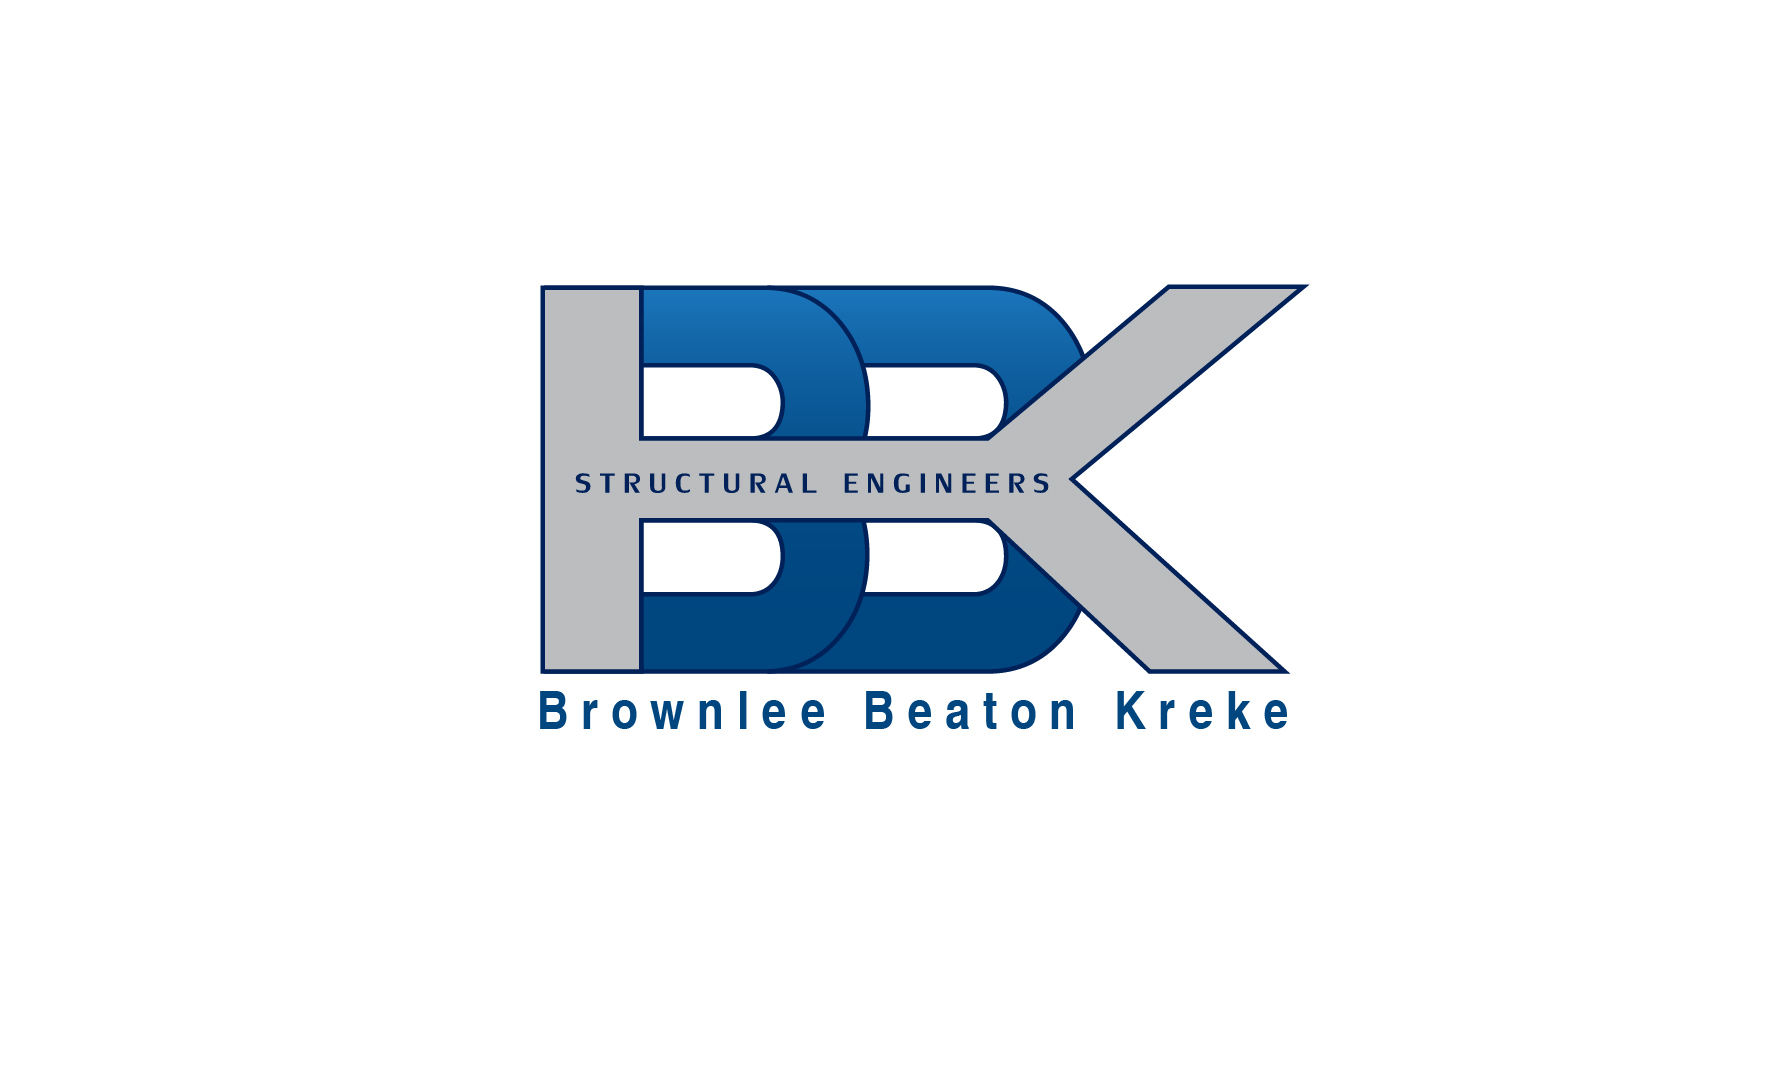 Logo Design by 3draw - Entry No. 59 in the Logo Design Contest Logo Design Needed for Exciting New Company BBK Consulting Engineers.